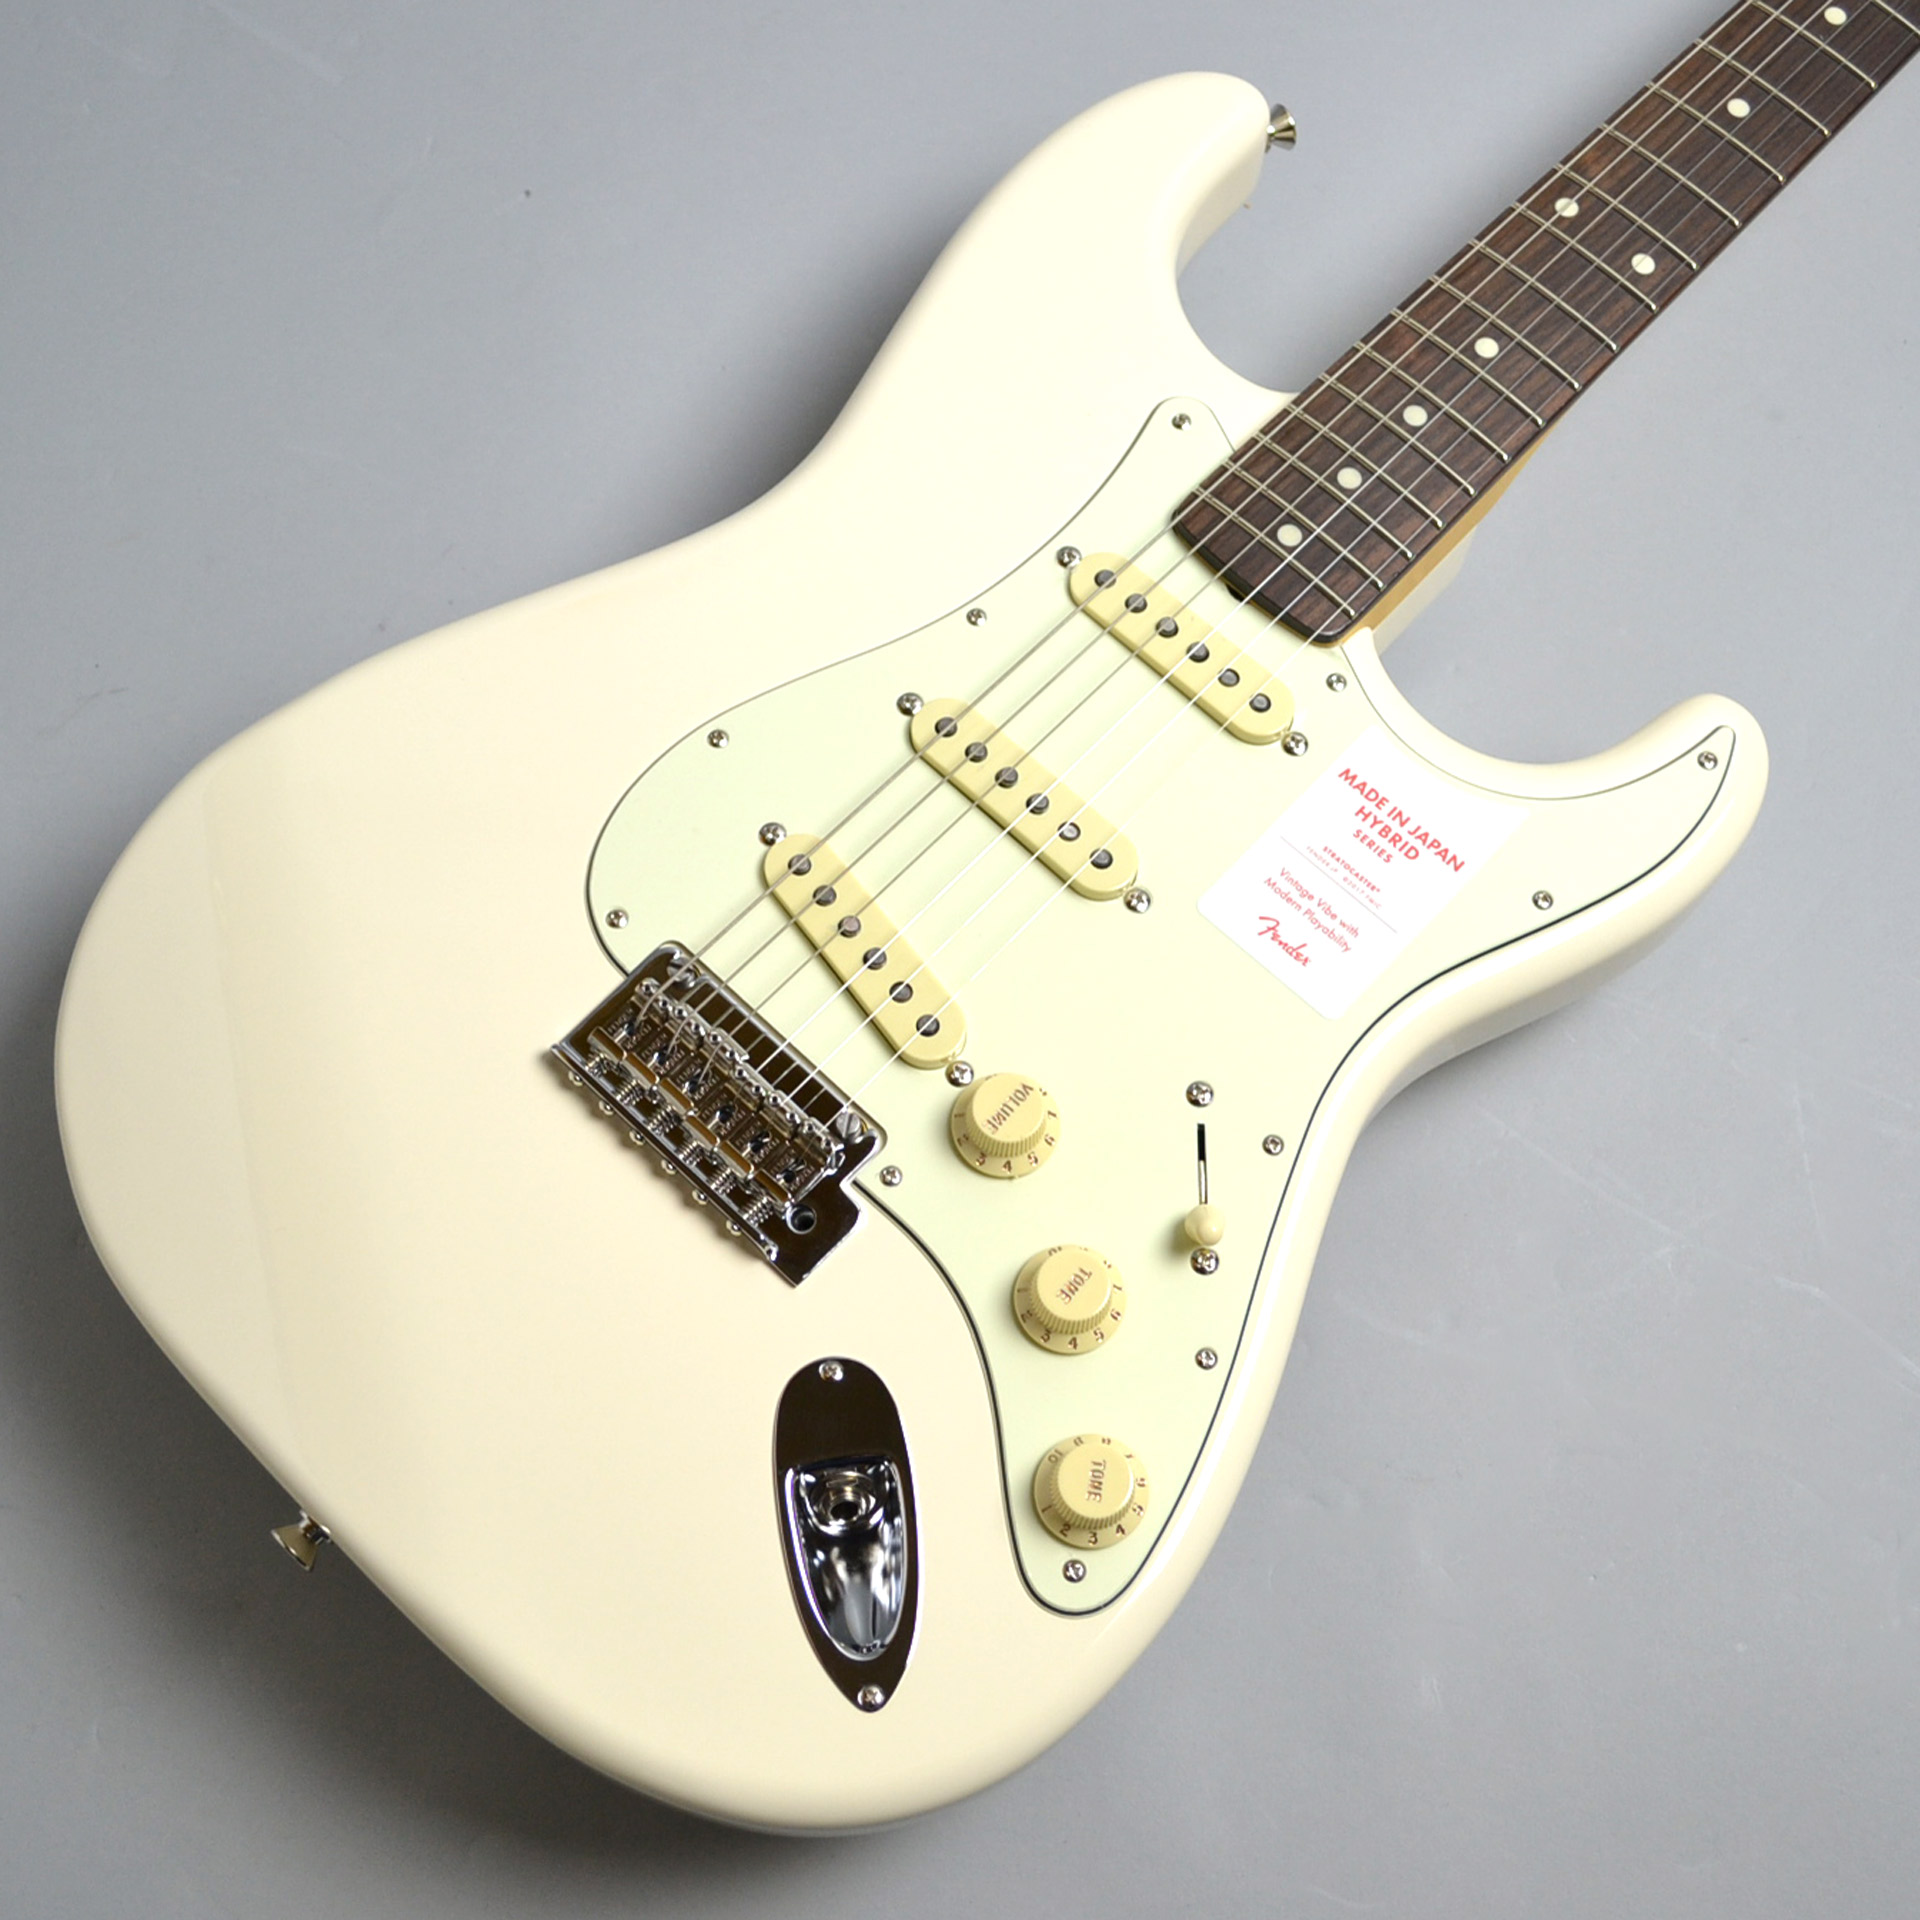 MADE IN JAPAN HYBRID 60S STRATOCASTERのボディトップ-アップ画像